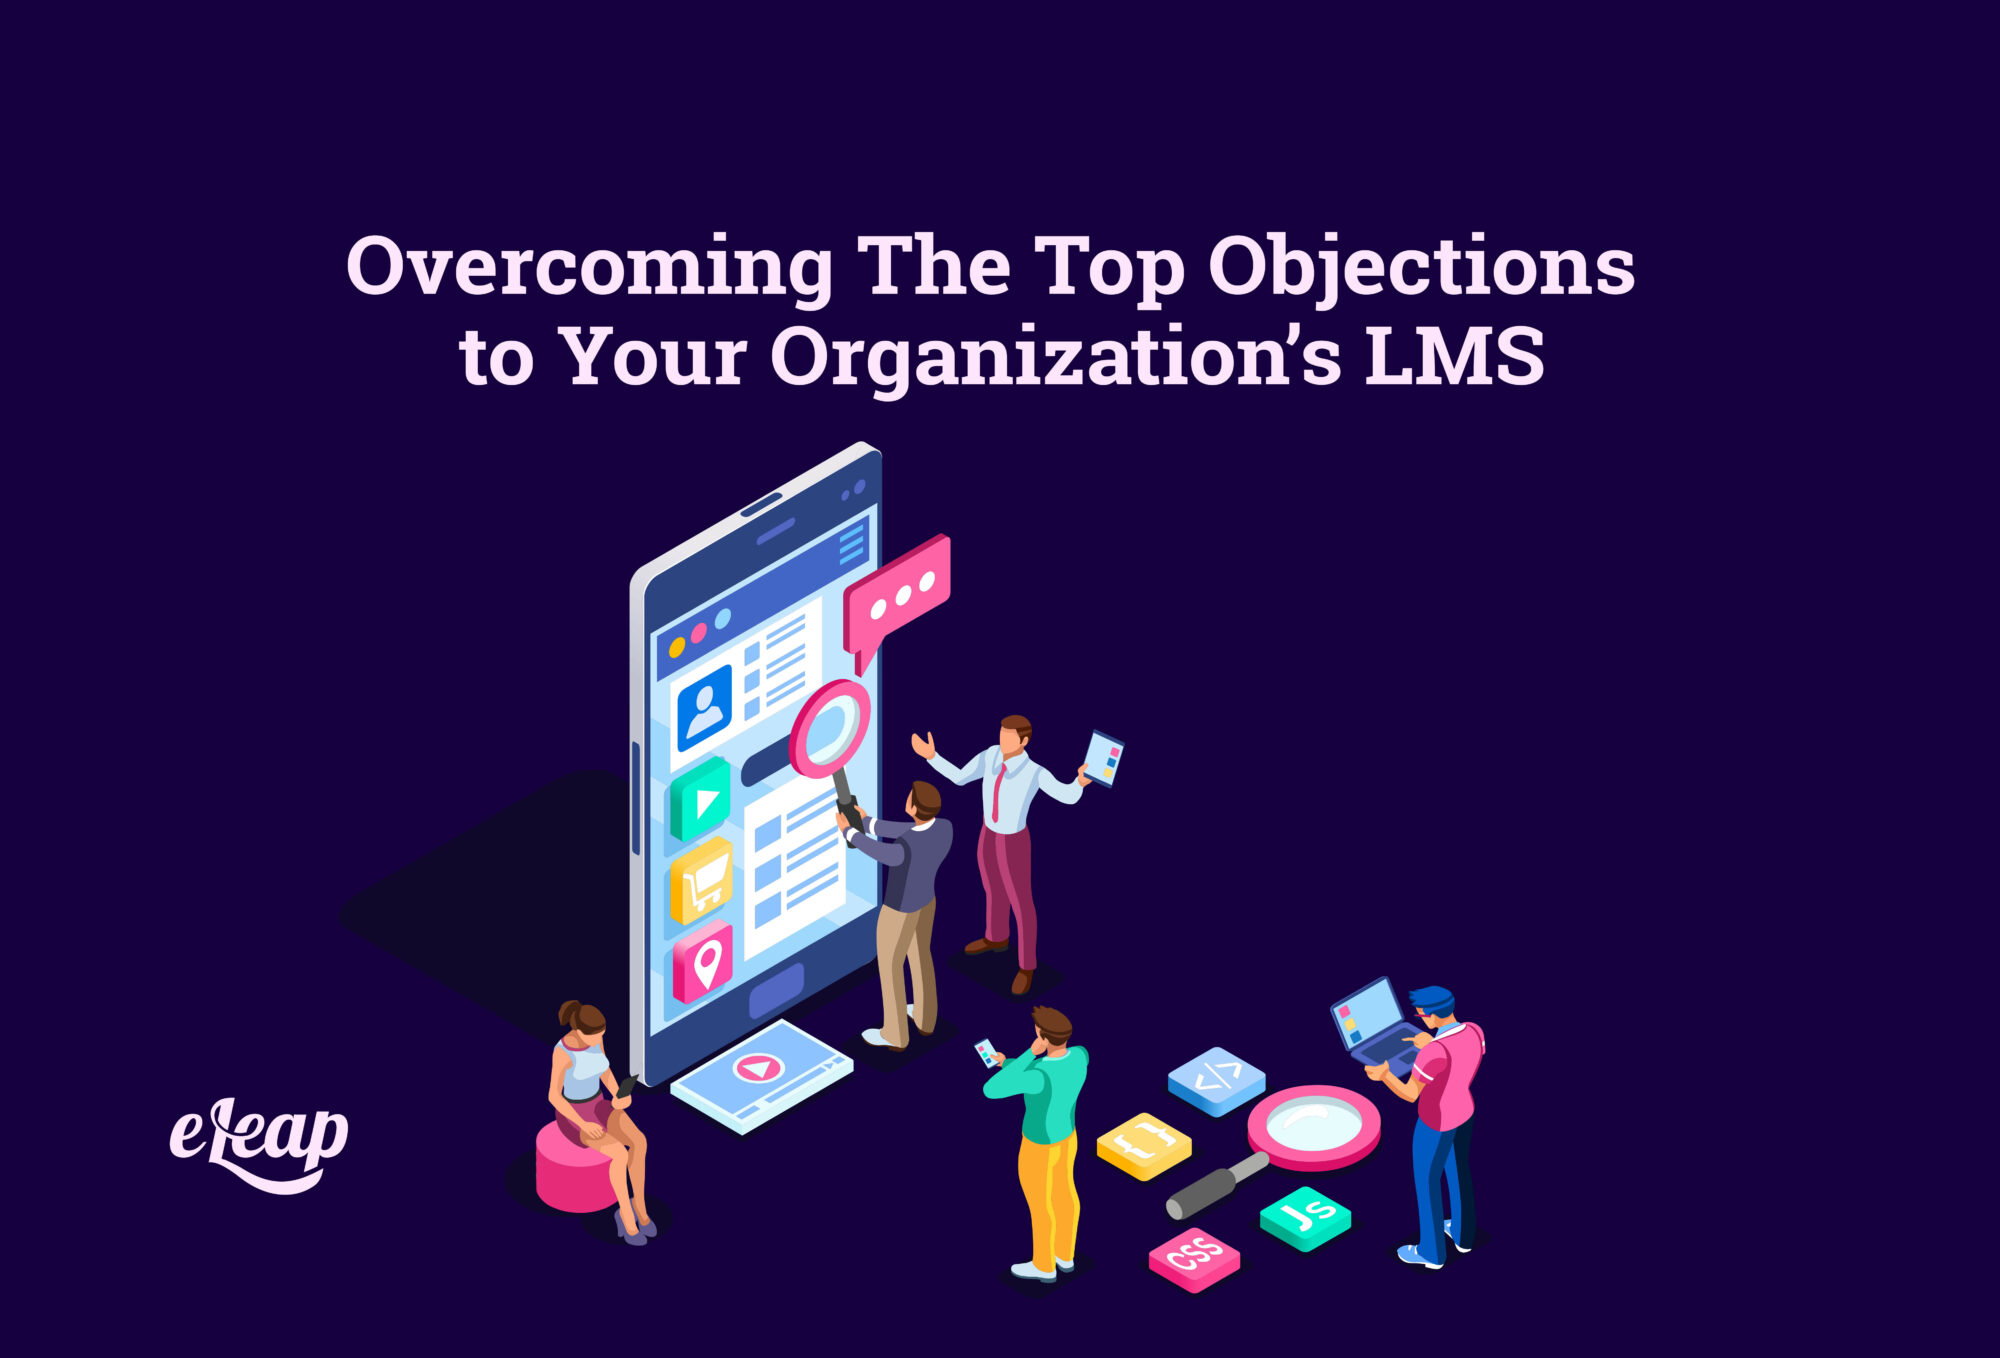 Overcoming The Top Objections to Your Organization's LMS